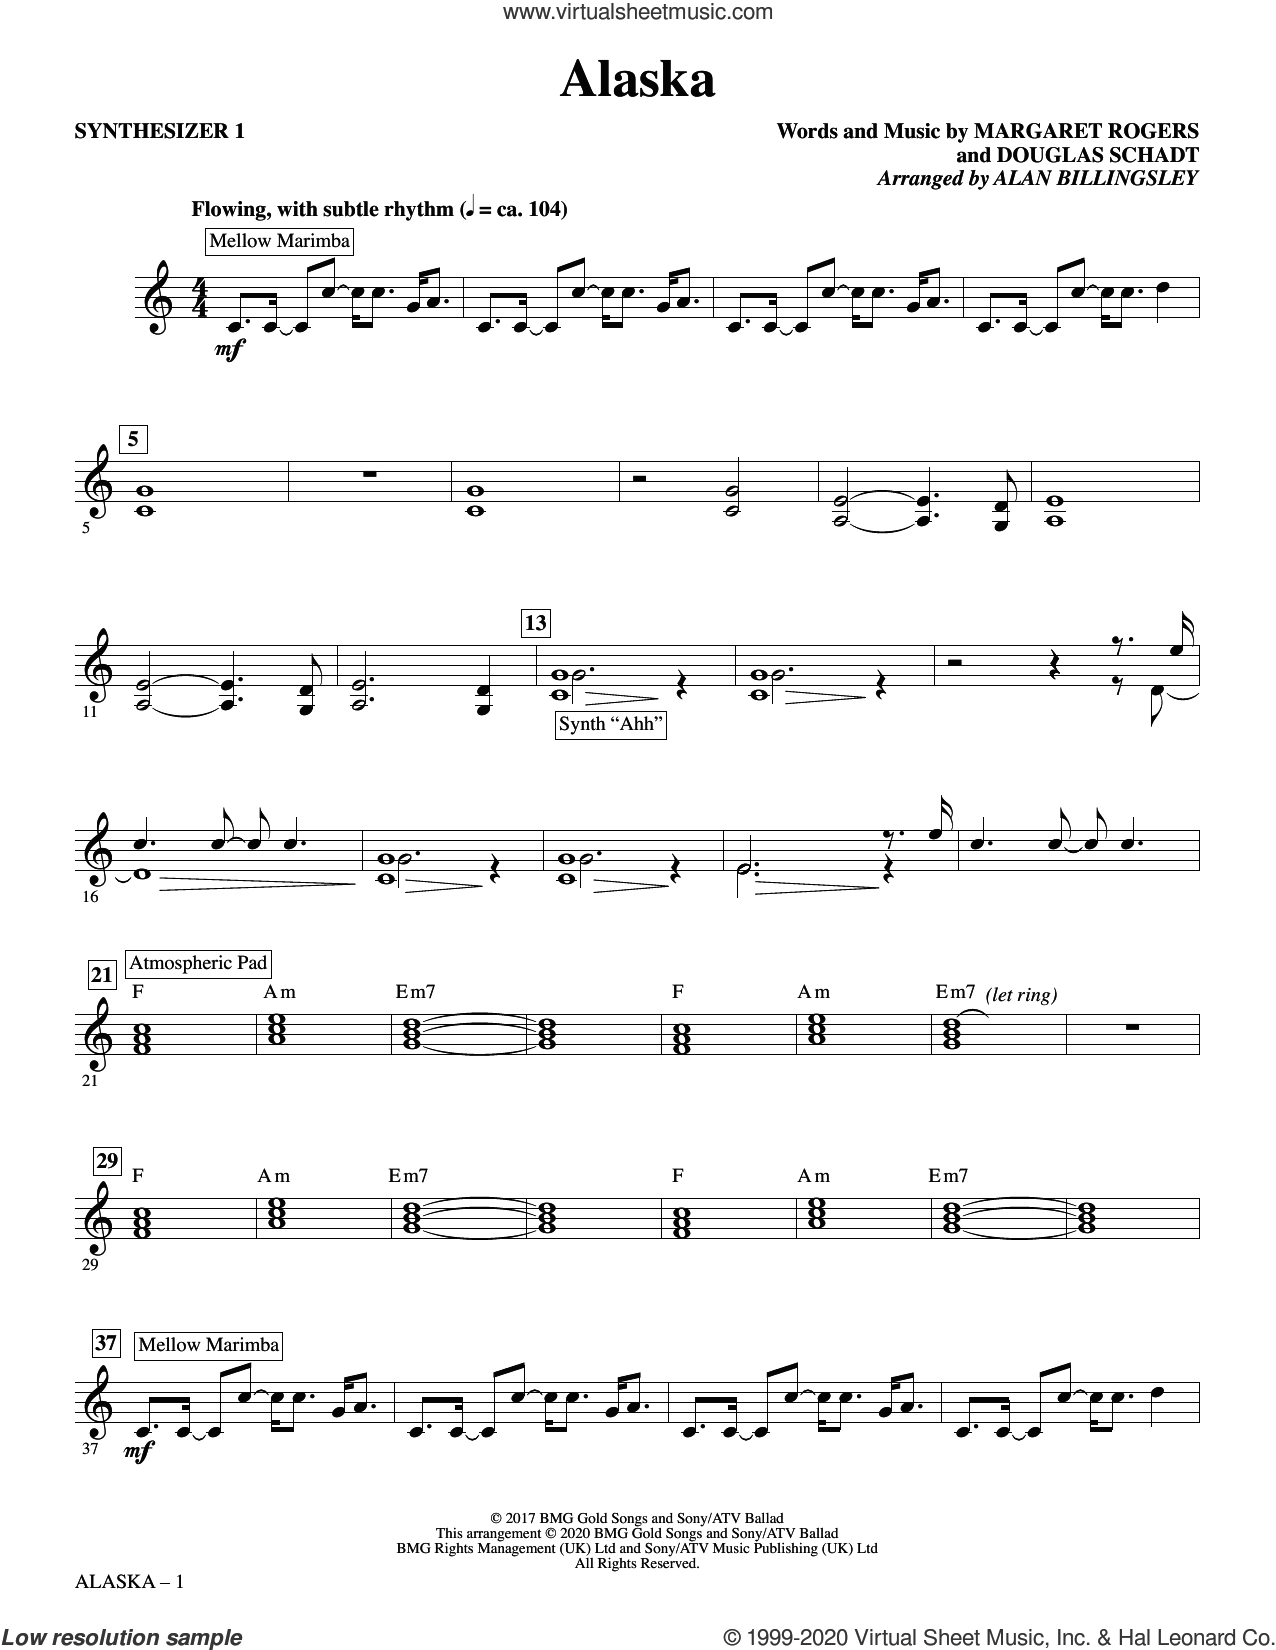 Alaska (arr. Alan Billingsley) (complete set of parts) sheet music for orchestra/band by Alan Billingsley, Douglas Schadt and Maggie Rogers, intermediate skill level